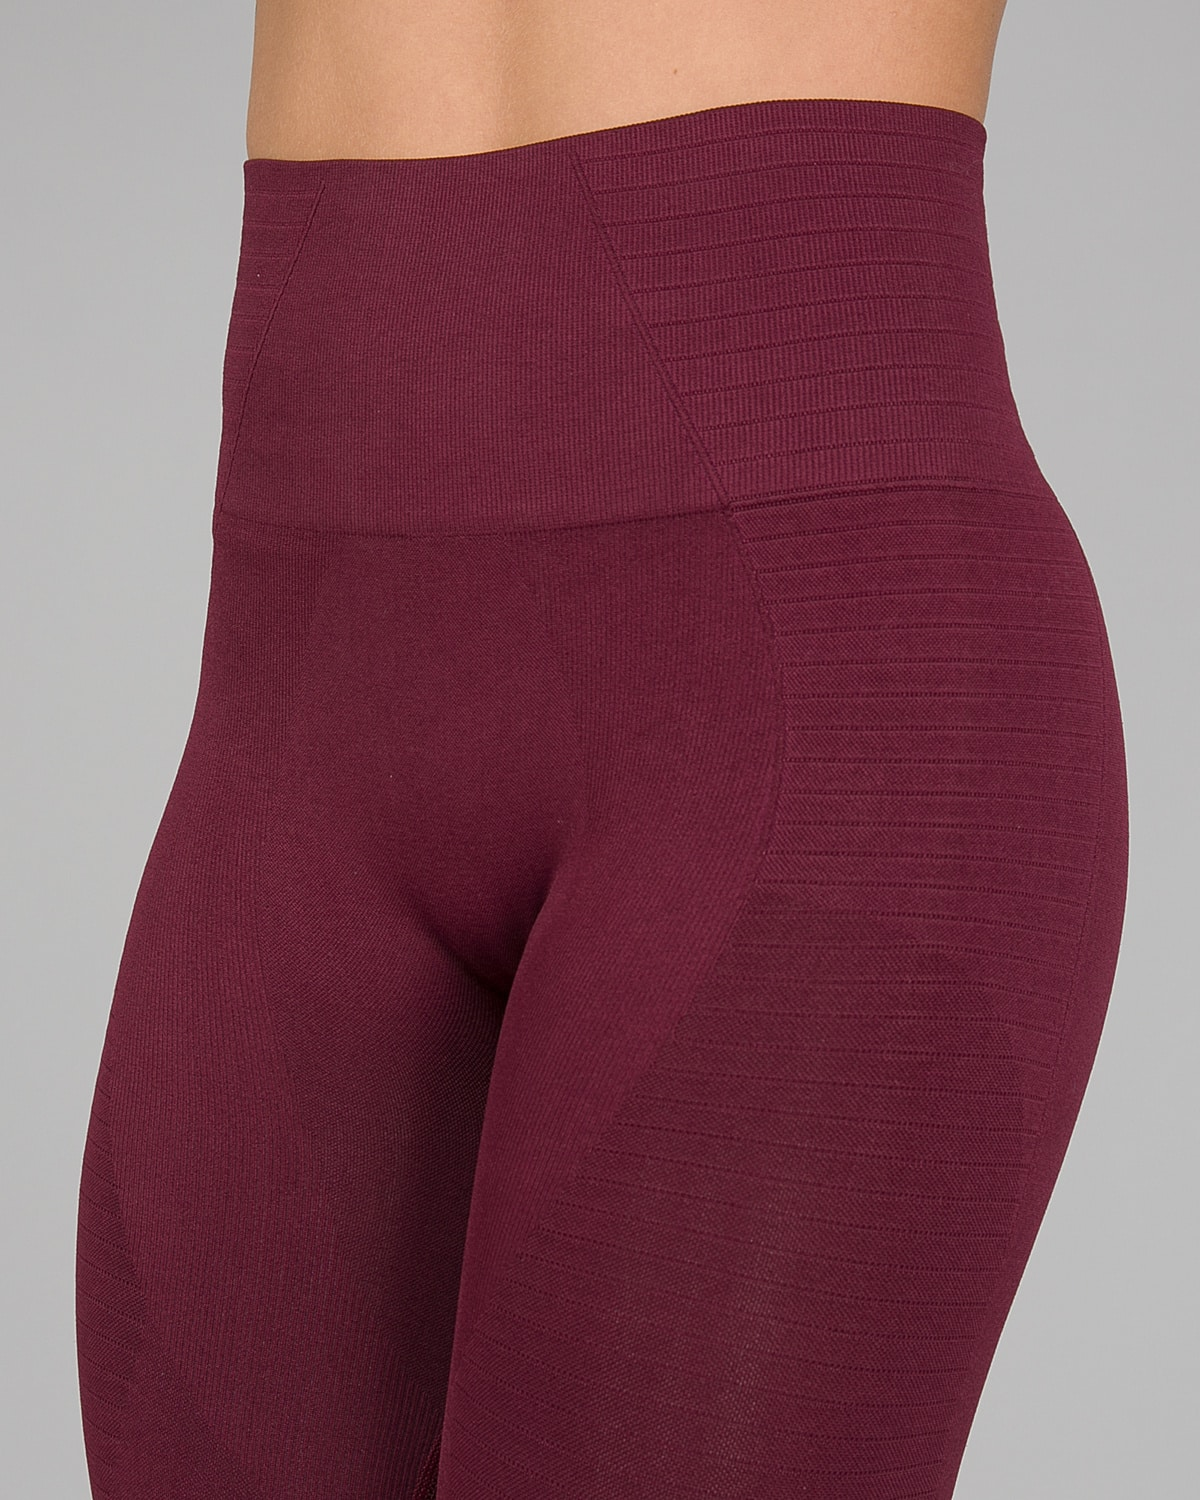 Jerf Gela 2.0 tights Maroon11